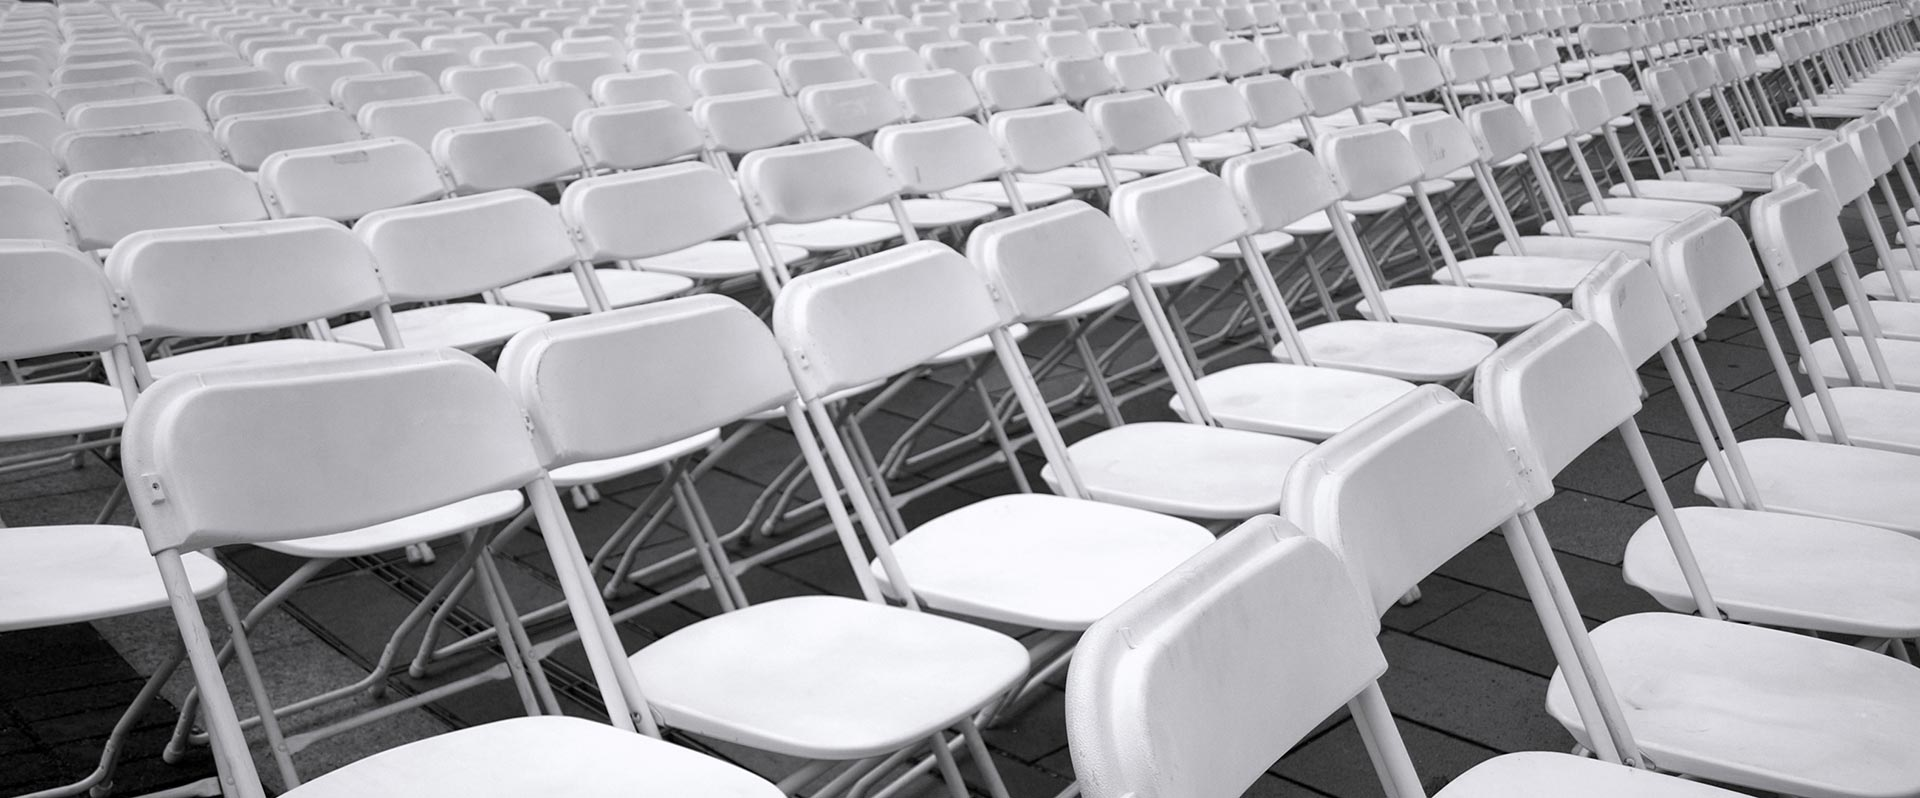 Hiring-The-Right-Chairs-For-Your-Event-Seating-Options